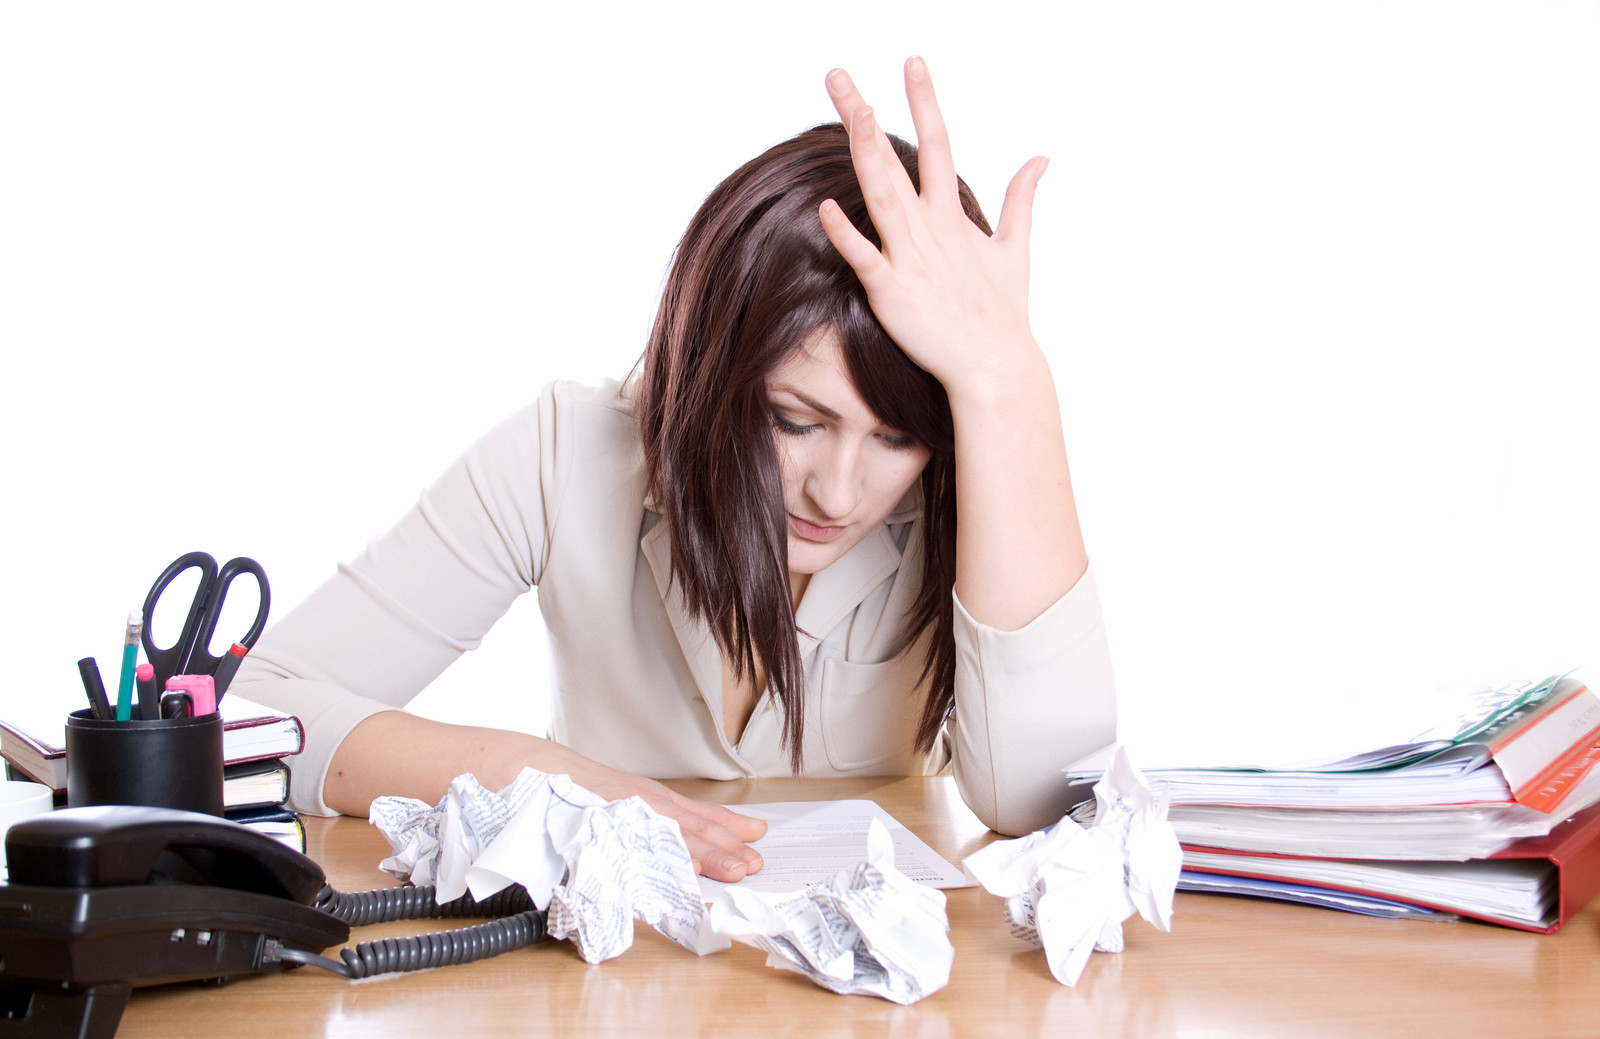 Woman looking stressed with crumpled papers on her desk